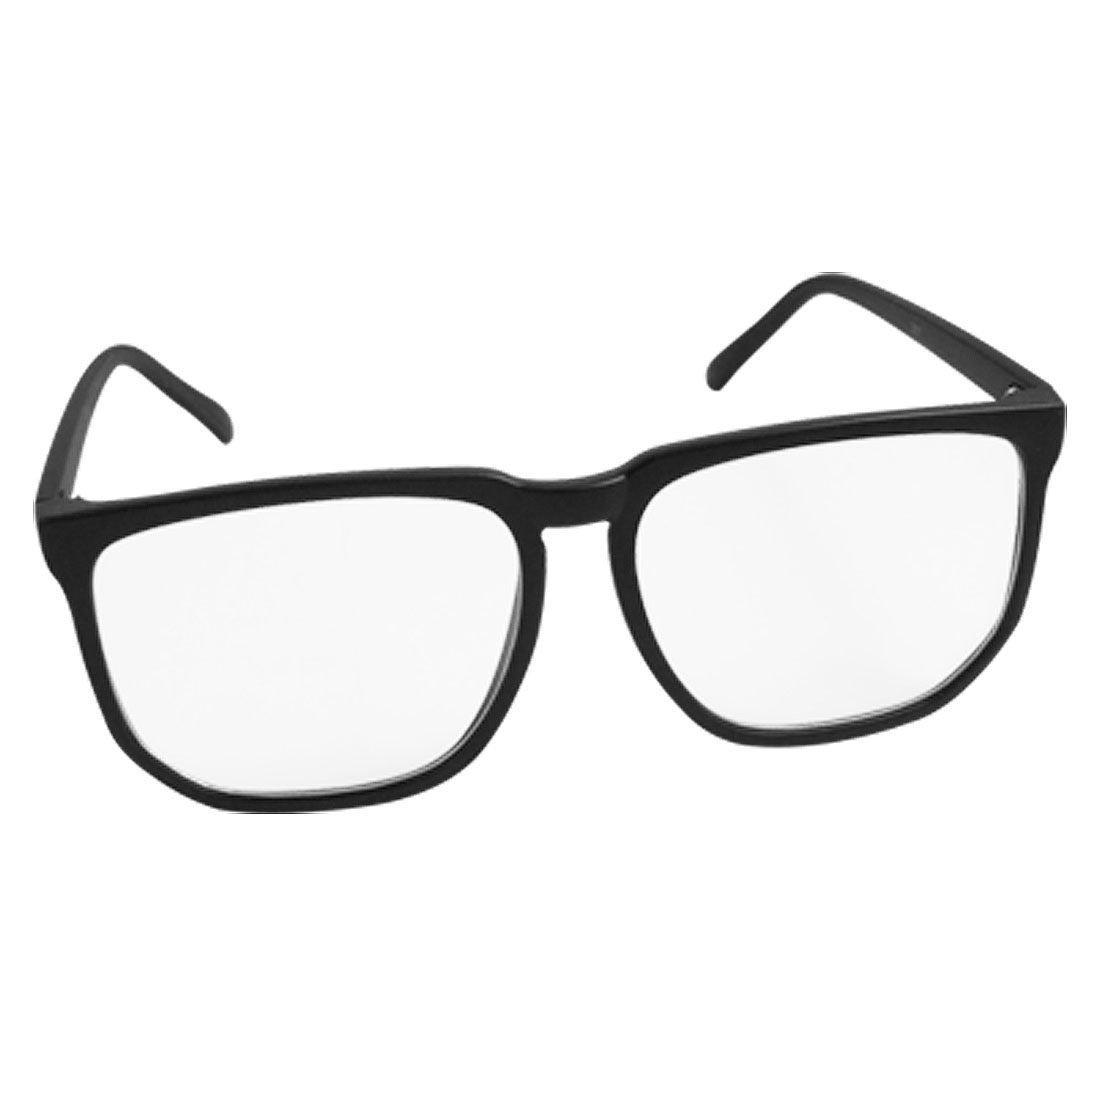 Rubberized Black Plastic Frame Clear Lens Eyewear Glasses